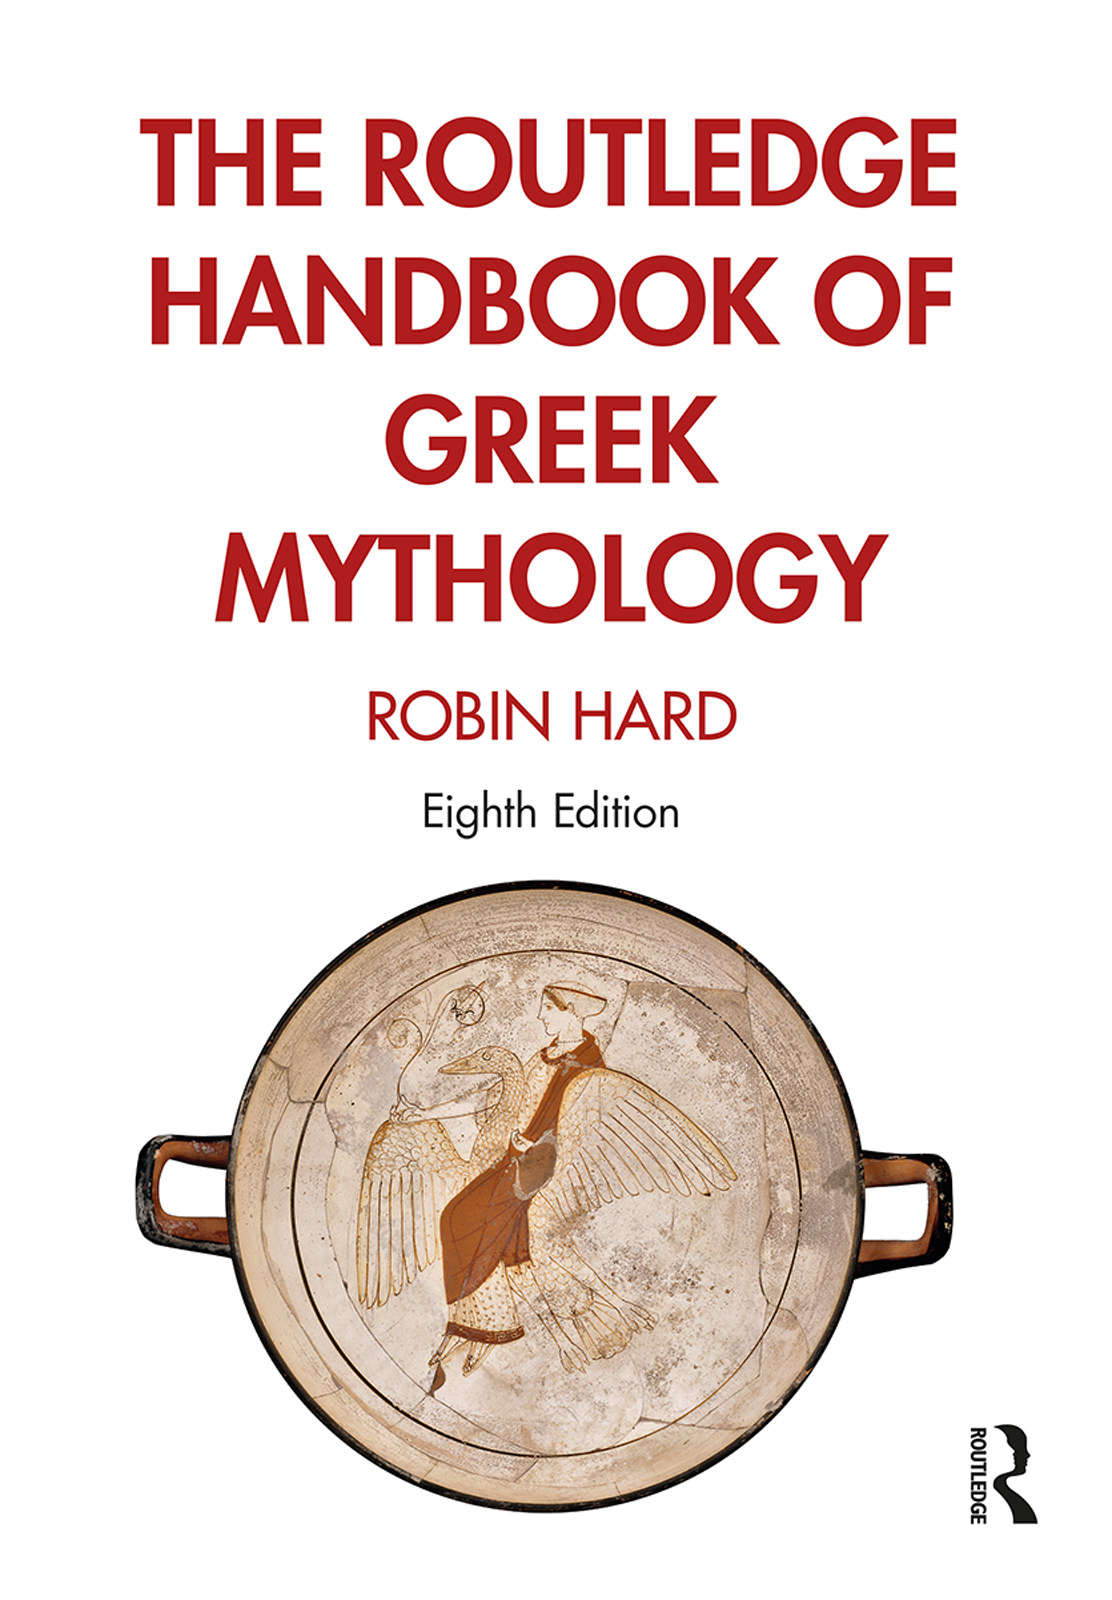 The Routledge Handbook of Greek Mythology book cover